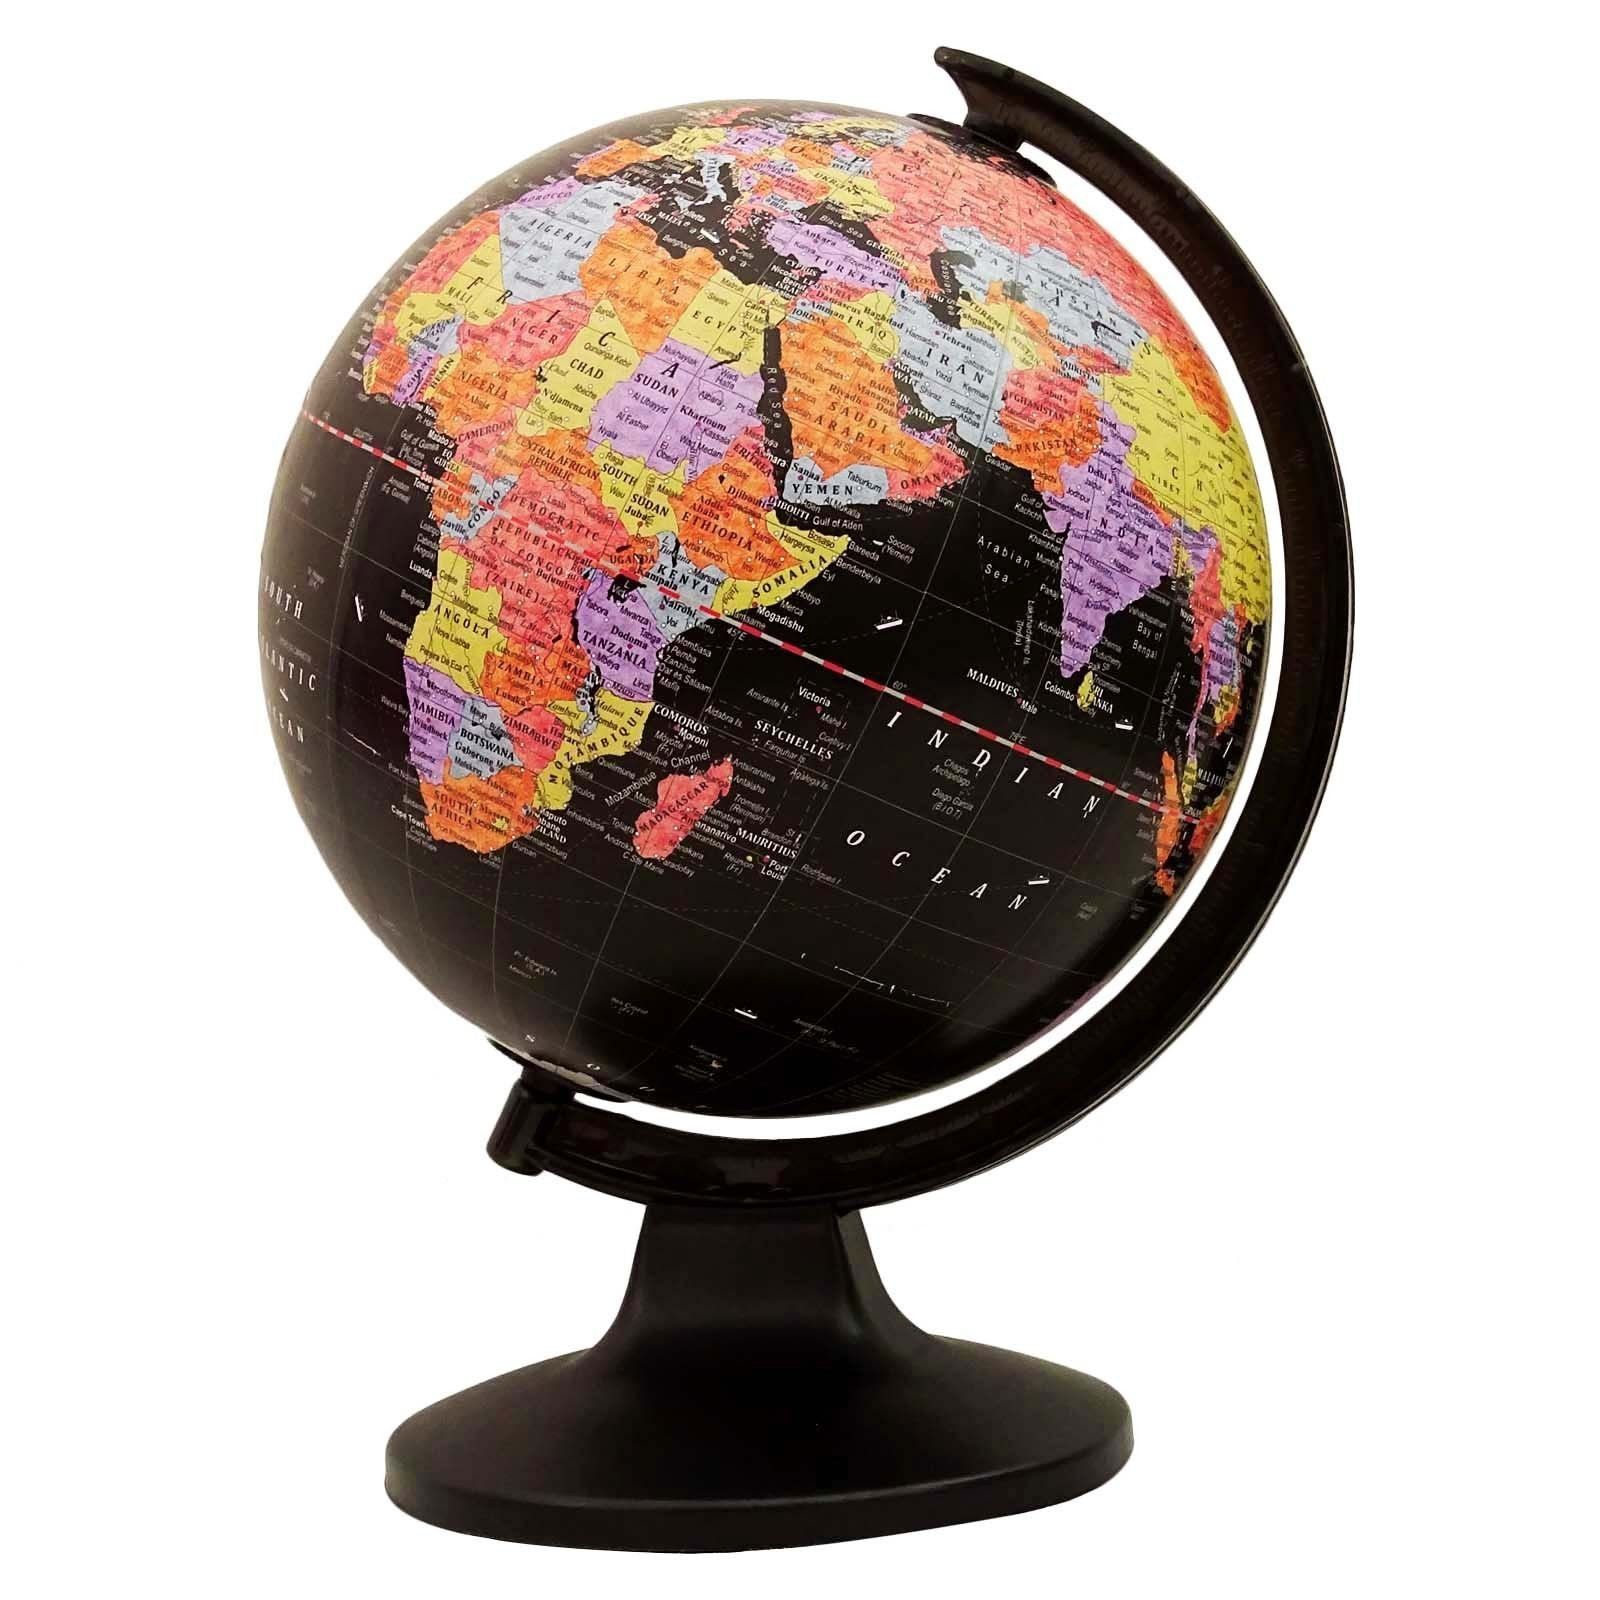 Desktop table decor rotating globes ocean geographical earth world desktop table decor rotating globes ocean geographical earth world map globe easy to read gumiabroncs Images